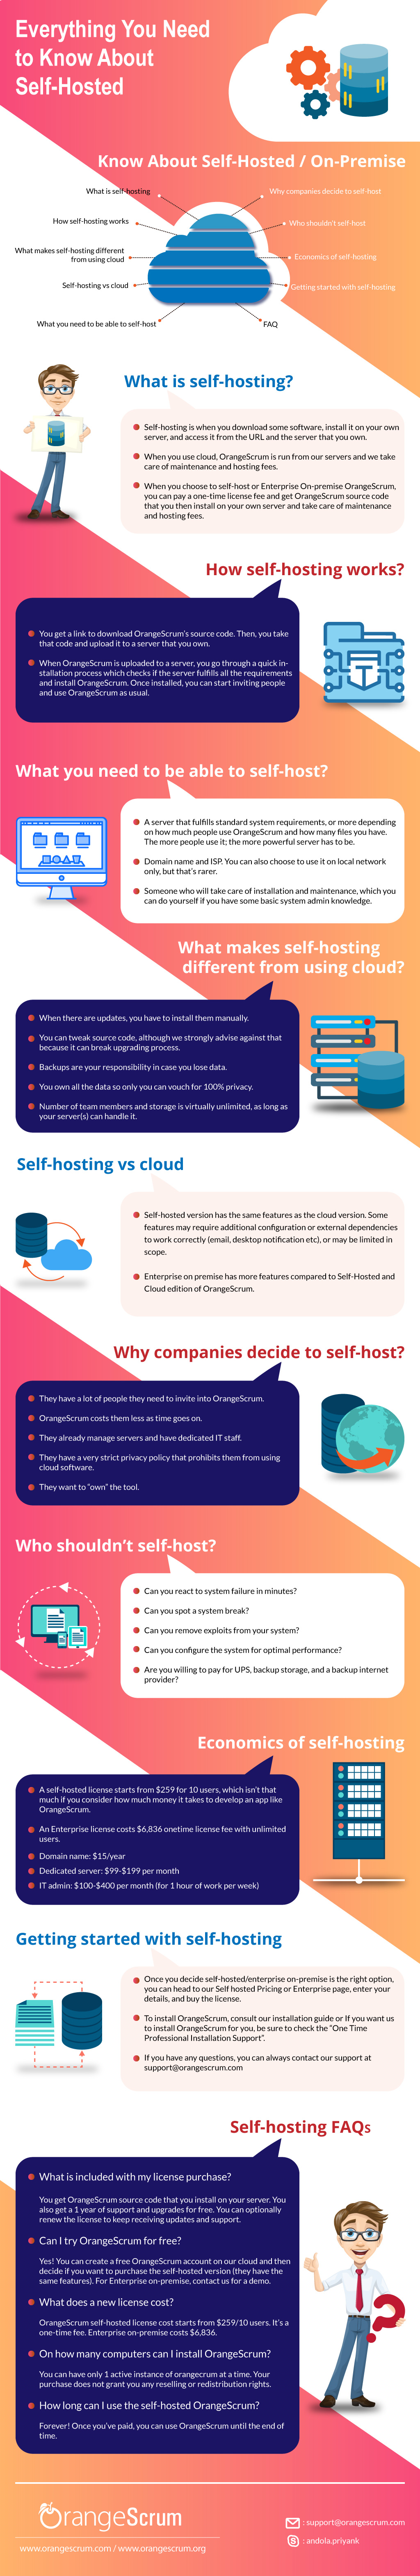 Everything You Need To Know About Self-Hosted